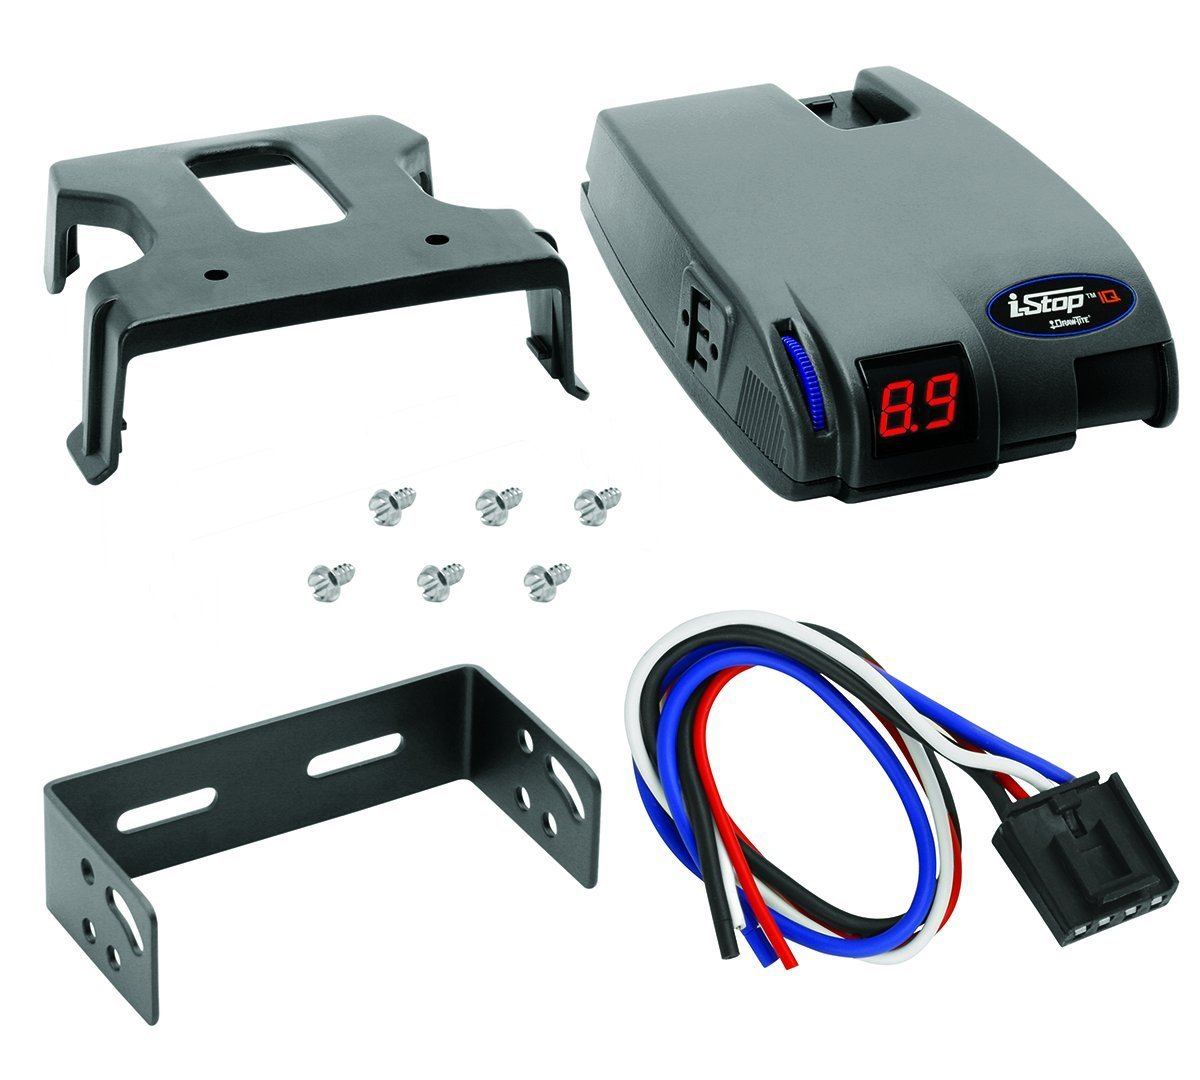 Top 10 Trailer Brake Controller Reviews - [The Best of 2018]